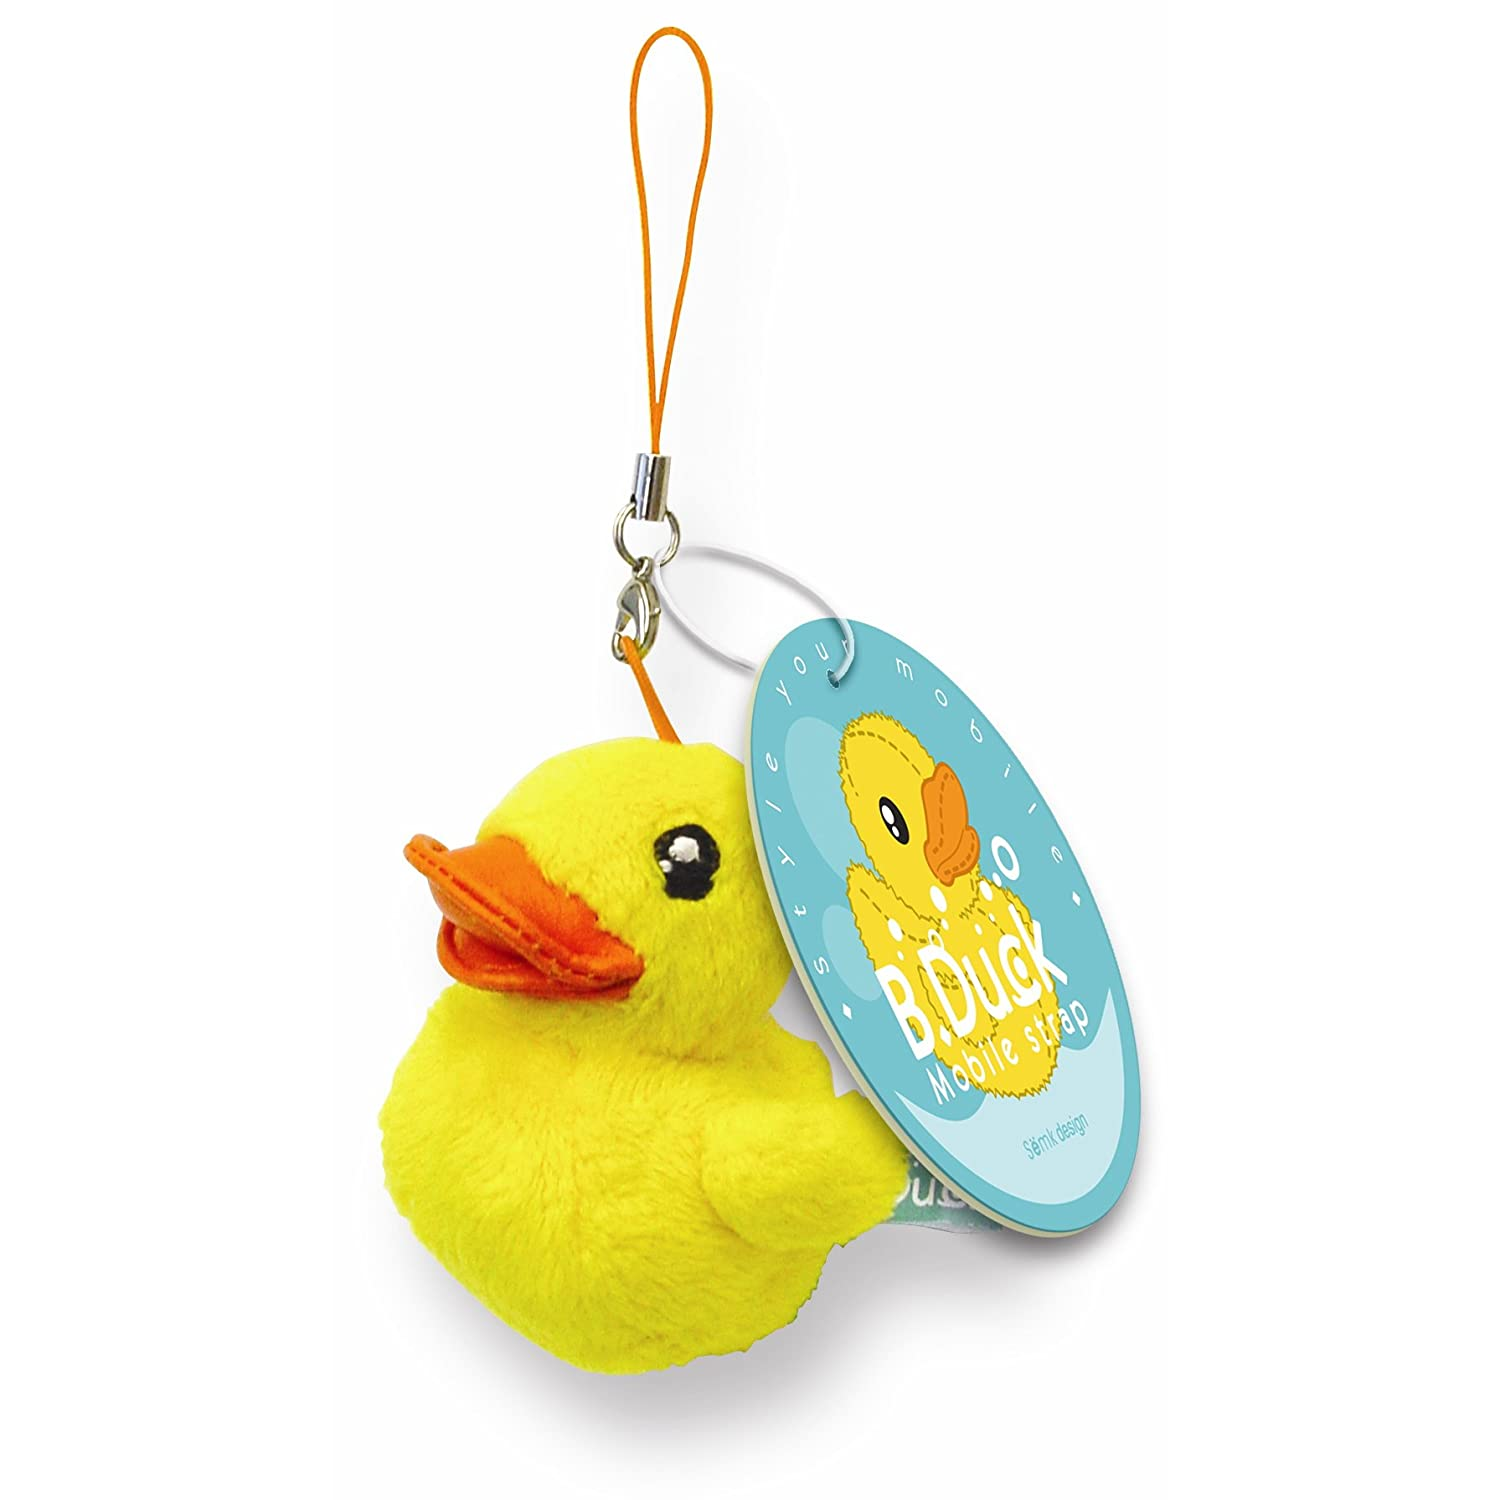 B.Duck Mobile Accessory (6.5cm) Yellow Semk 1803161